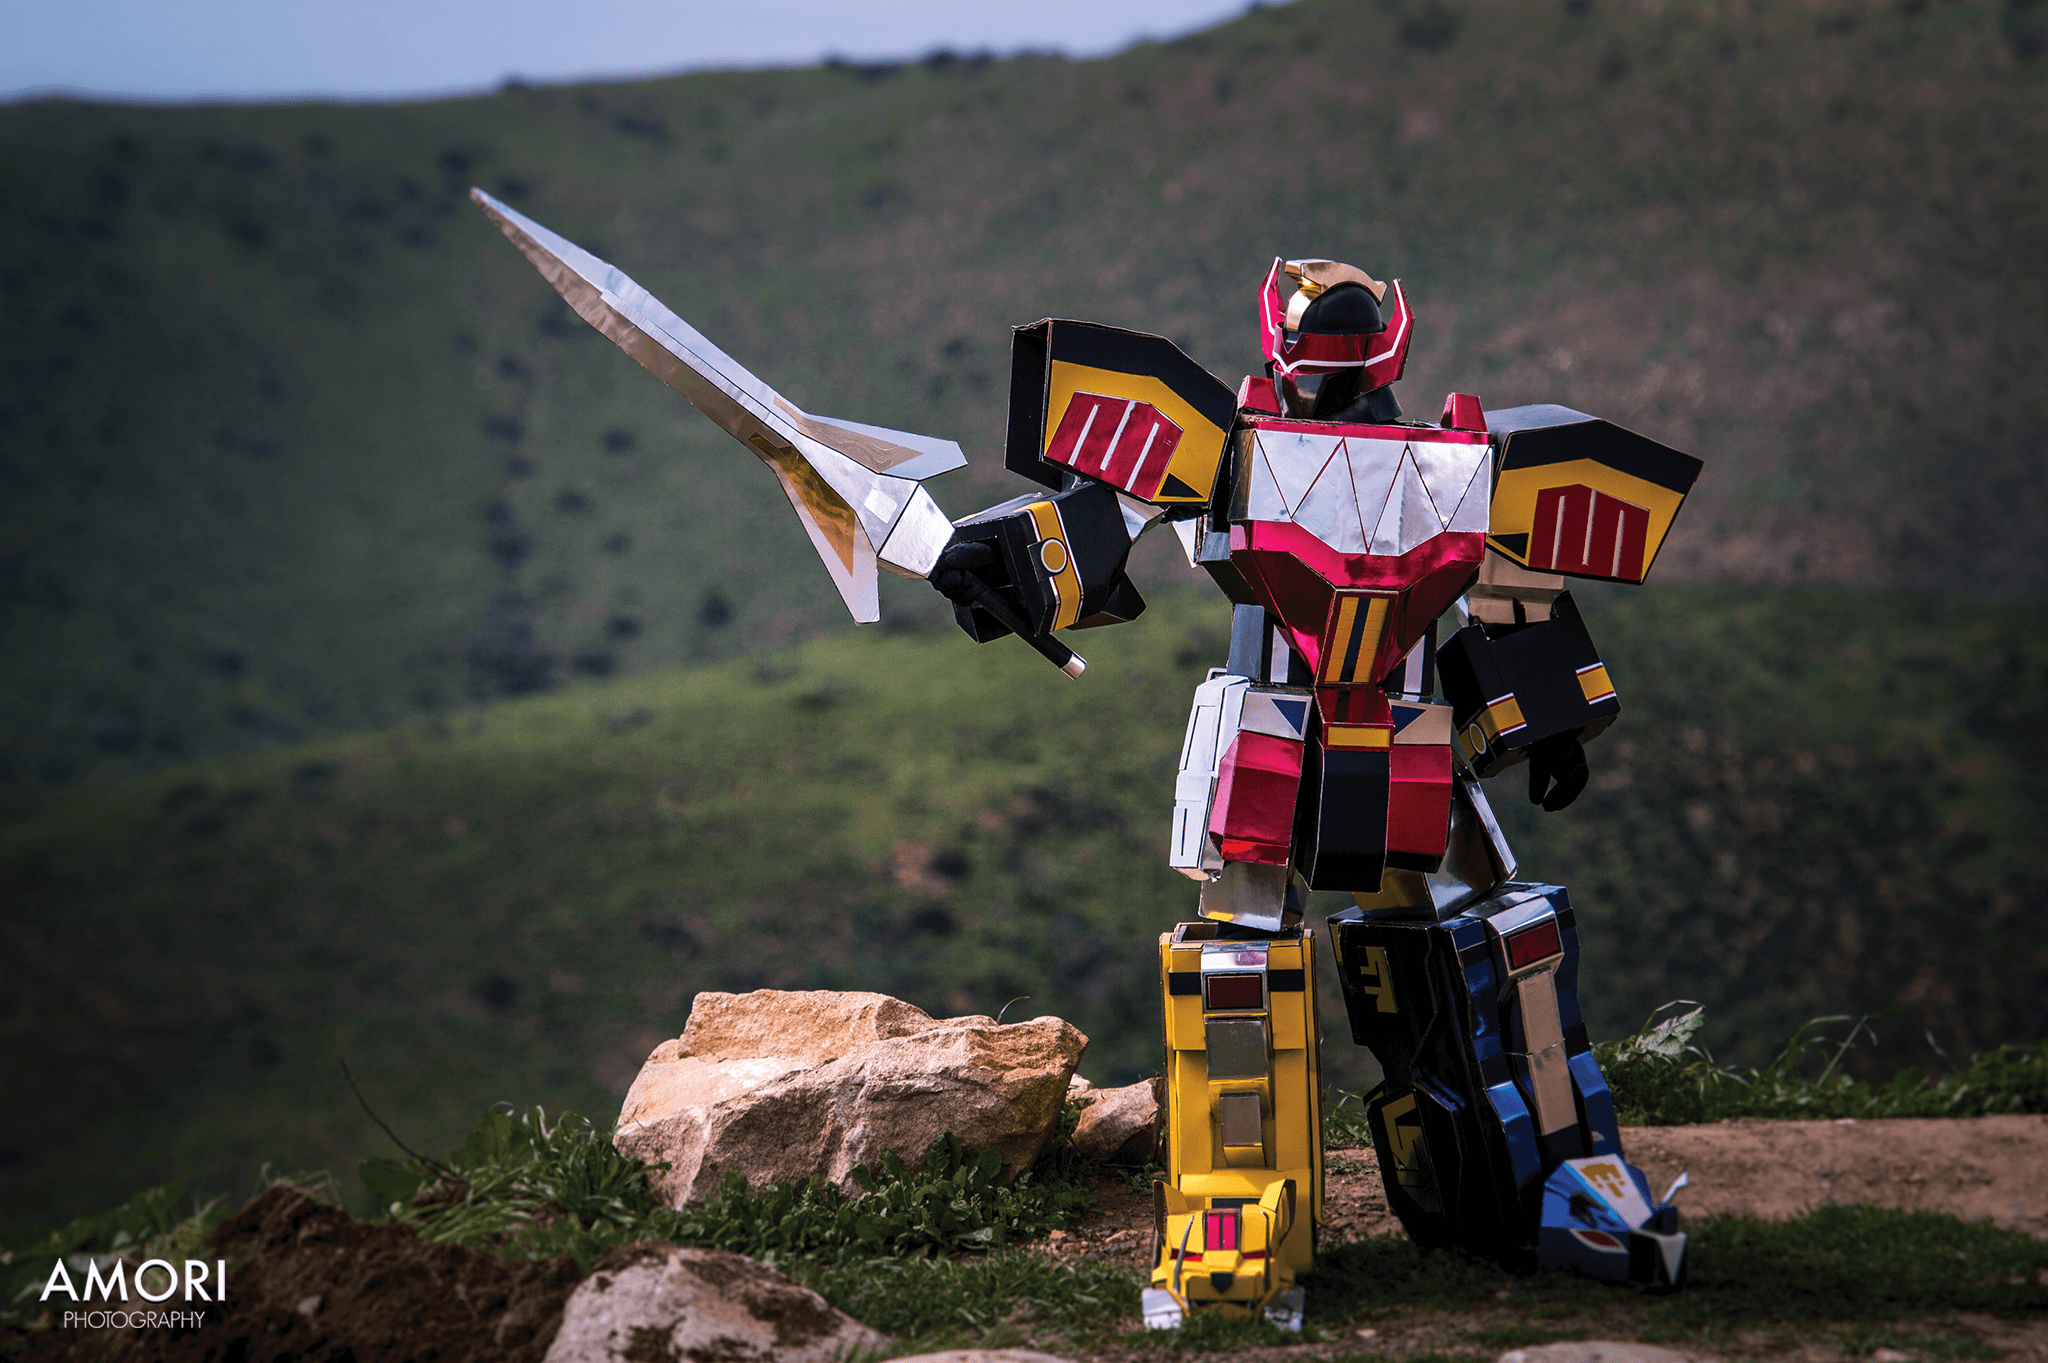 d-slim as the Dino Megazord